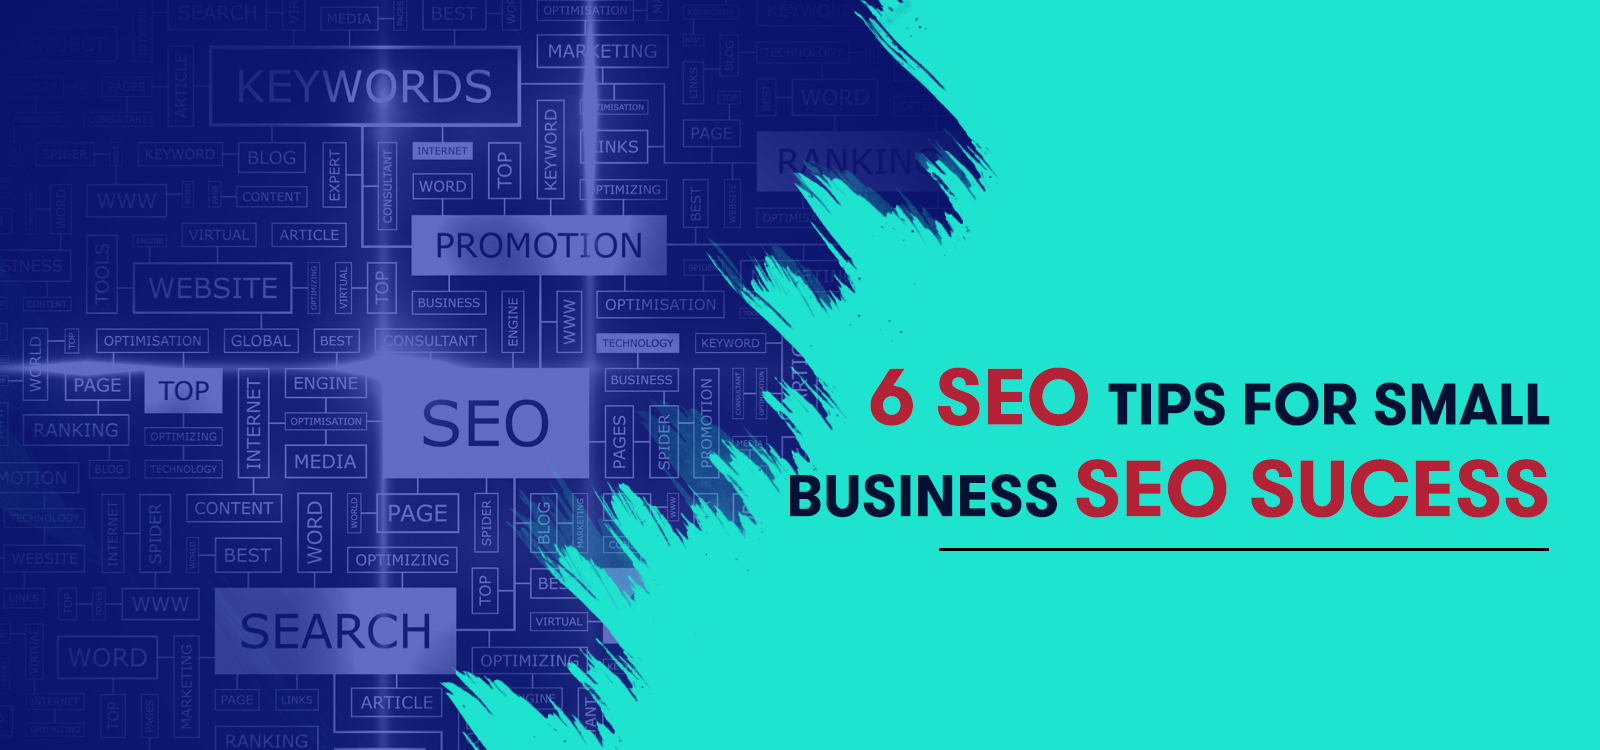 6 SEO tips for small business SEO success